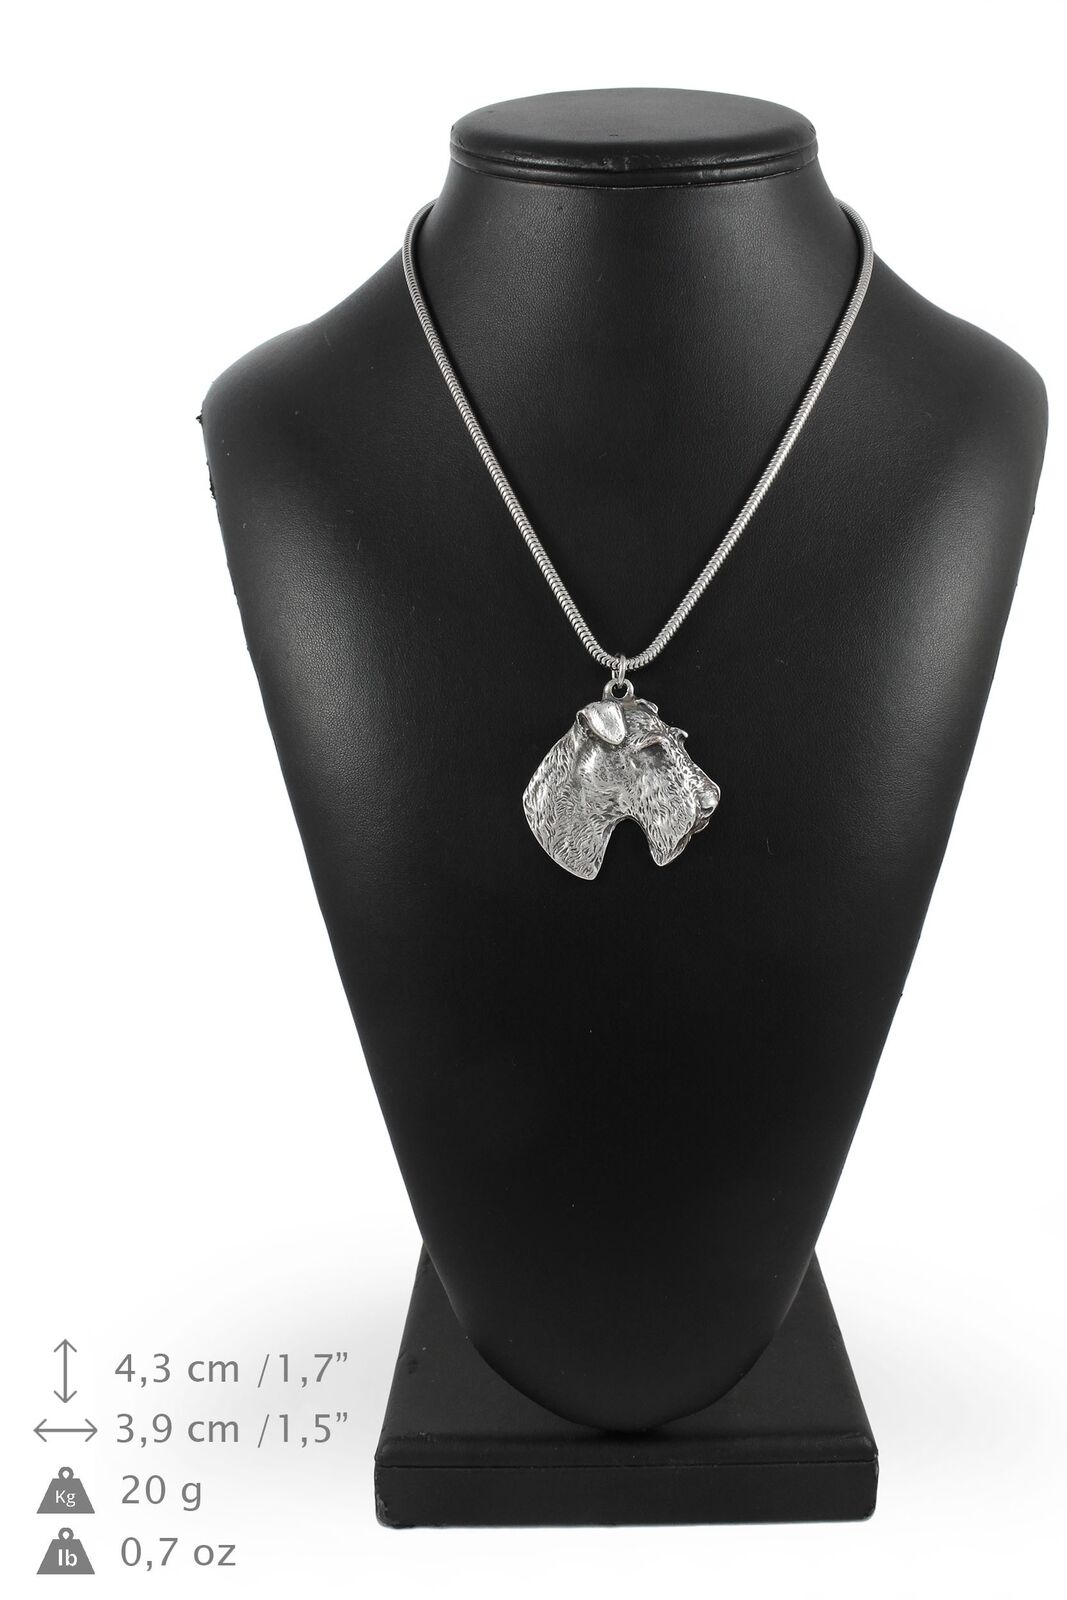 Foksterier - Silber plated necklace with Silber cord, high quality, Art Dog